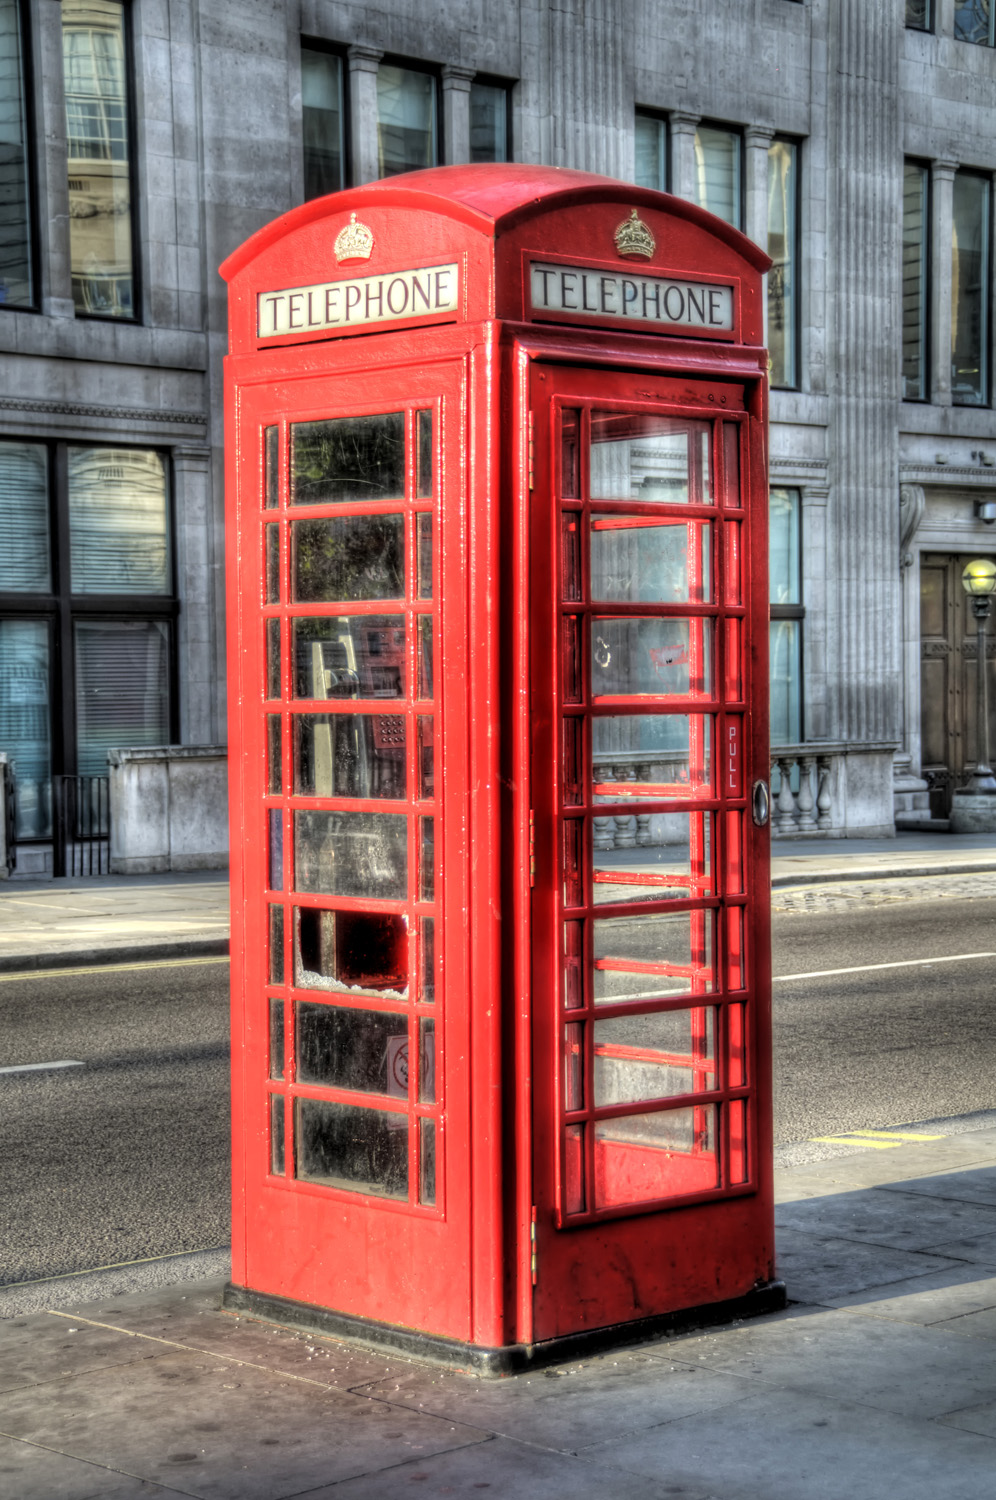 London, England - Telephone Booth - HDR « Places 2 Explore